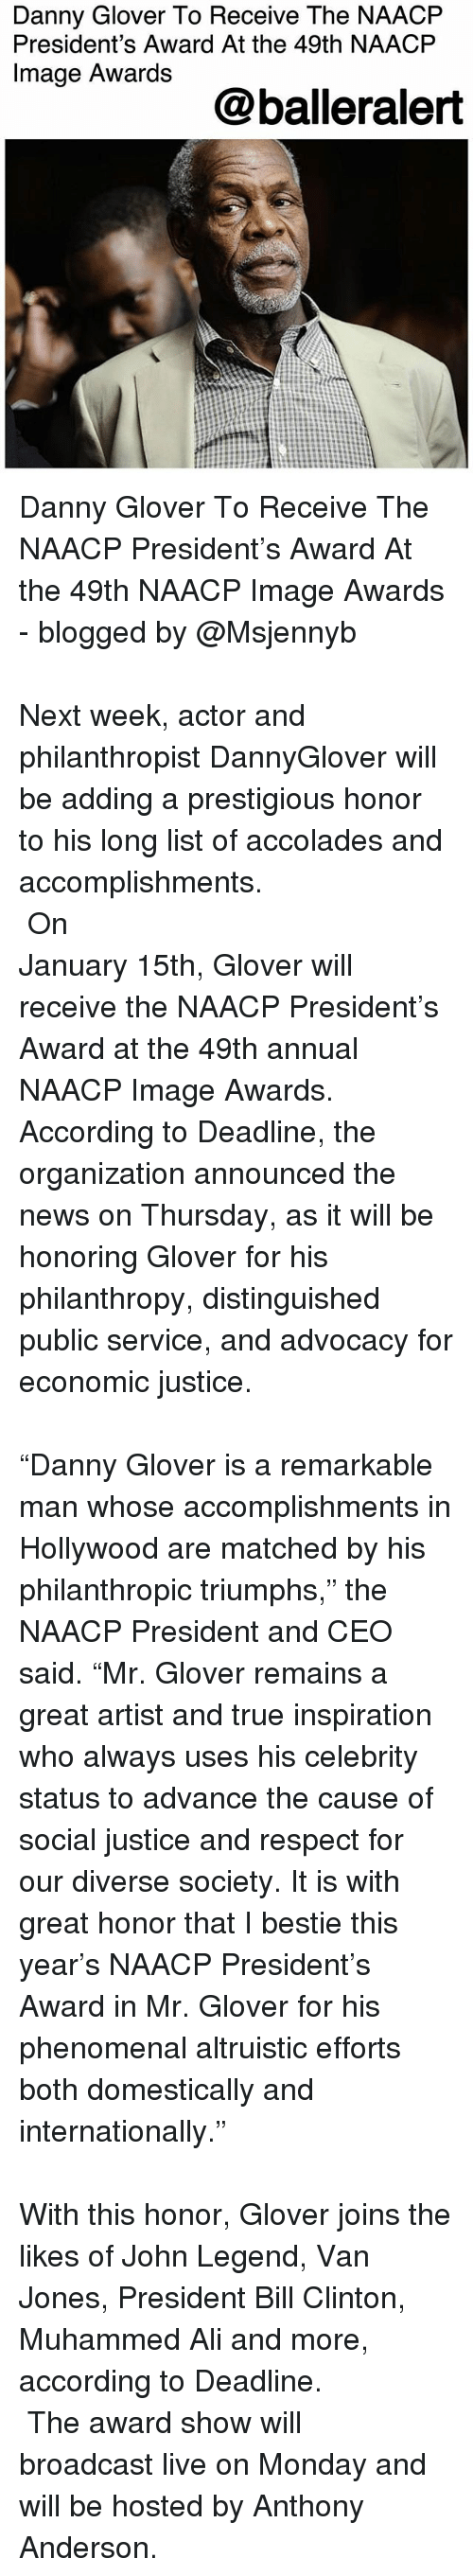 """accolades: Danny Glover To Receive The NAACFP  President's Award At the 49th NAACP  Image Awards  @balleralert Danny Glover To Receive The NAACP President's Award At the 49th NAACP Image Awards - blogged by @Msjennyb ⠀⠀⠀⠀⠀⠀⠀⠀⠀⠀⠀⠀⠀⠀⠀⠀⠀⠀⠀⠀⠀⠀⠀⠀⠀⠀⠀⠀⠀⠀⠀⠀⠀⠀⠀⠀⠀⠀⠀⠀⠀⠀⠀⠀⠀ Next week, actor and philanthropist DannyGlover will be adding a prestigious honor to his long list of accolades and accomplishments. ⠀⠀⠀⠀⠀⠀⠀⠀⠀⠀⠀⠀⠀⠀⠀⠀⠀⠀⠀⠀⠀⠀⠀⠀⠀⠀⠀⠀⠀⠀⠀⠀⠀⠀⠀⠀⠀⠀⠀⠀⠀⠀⠀⠀⠀ On January 15th, Glover will receive the NAACP President's Award at the 49th annual NAACP Image Awards. According to Deadline, the organization announced the news on Thursday, as it will be honoring Glover for his philanthropy, distinguished public service, and advocacy for economic justice. ⠀⠀⠀⠀⠀⠀⠀⠀⠀⠀⠀⠀⠀⠀⠀⠀⠀⠀⠀⠀⠀⠀⠀⠀⠀⠀⠀⠀⠀⠀⠀⠀⠀⠀⠀⠀⠀⠀⠀⠀⠀⠀⠀⠀⠀ """"Danny Glover is a remarkable man whose accomplishments in Hollywood are matched by his philanthropic triumphs,"""" the NAACP President and CEO said. """"Mr. Glover remains a great artist and true inspiration who always uses his celebrity status to advance the cause of social justice and respect for our diverse society. It is with great honor that I bestie this year's NAACP President's Award in Mr. Glover for his phenomenal altruistic efforts both domestically and internationally."""" ⠀⠀⠀⠀⠀⠀⠀⠀⠀⠀⠀⠀⠀⠀⠀⠀⠀⠀⠀⠀⠀⠀⠀⠀⠀⠀⠀⠀⠀⠀⠀⠀⠀⠀⠀⠀⠀⠀⠀⠀⠀⠀⠀⠀⠀ With this honor, Glover joins the likes of John Legend, Van Jones, President Bill Clinton, Muhammed Ali and more, according to Deadline. ⠀⠀⠀⠀⠀⠀⠀⠀ ⠀⠀⠀⠀⠀⠀⠀⠀ The award show will broadcast live on Monday and will be hosted by Anthony Anderson."""